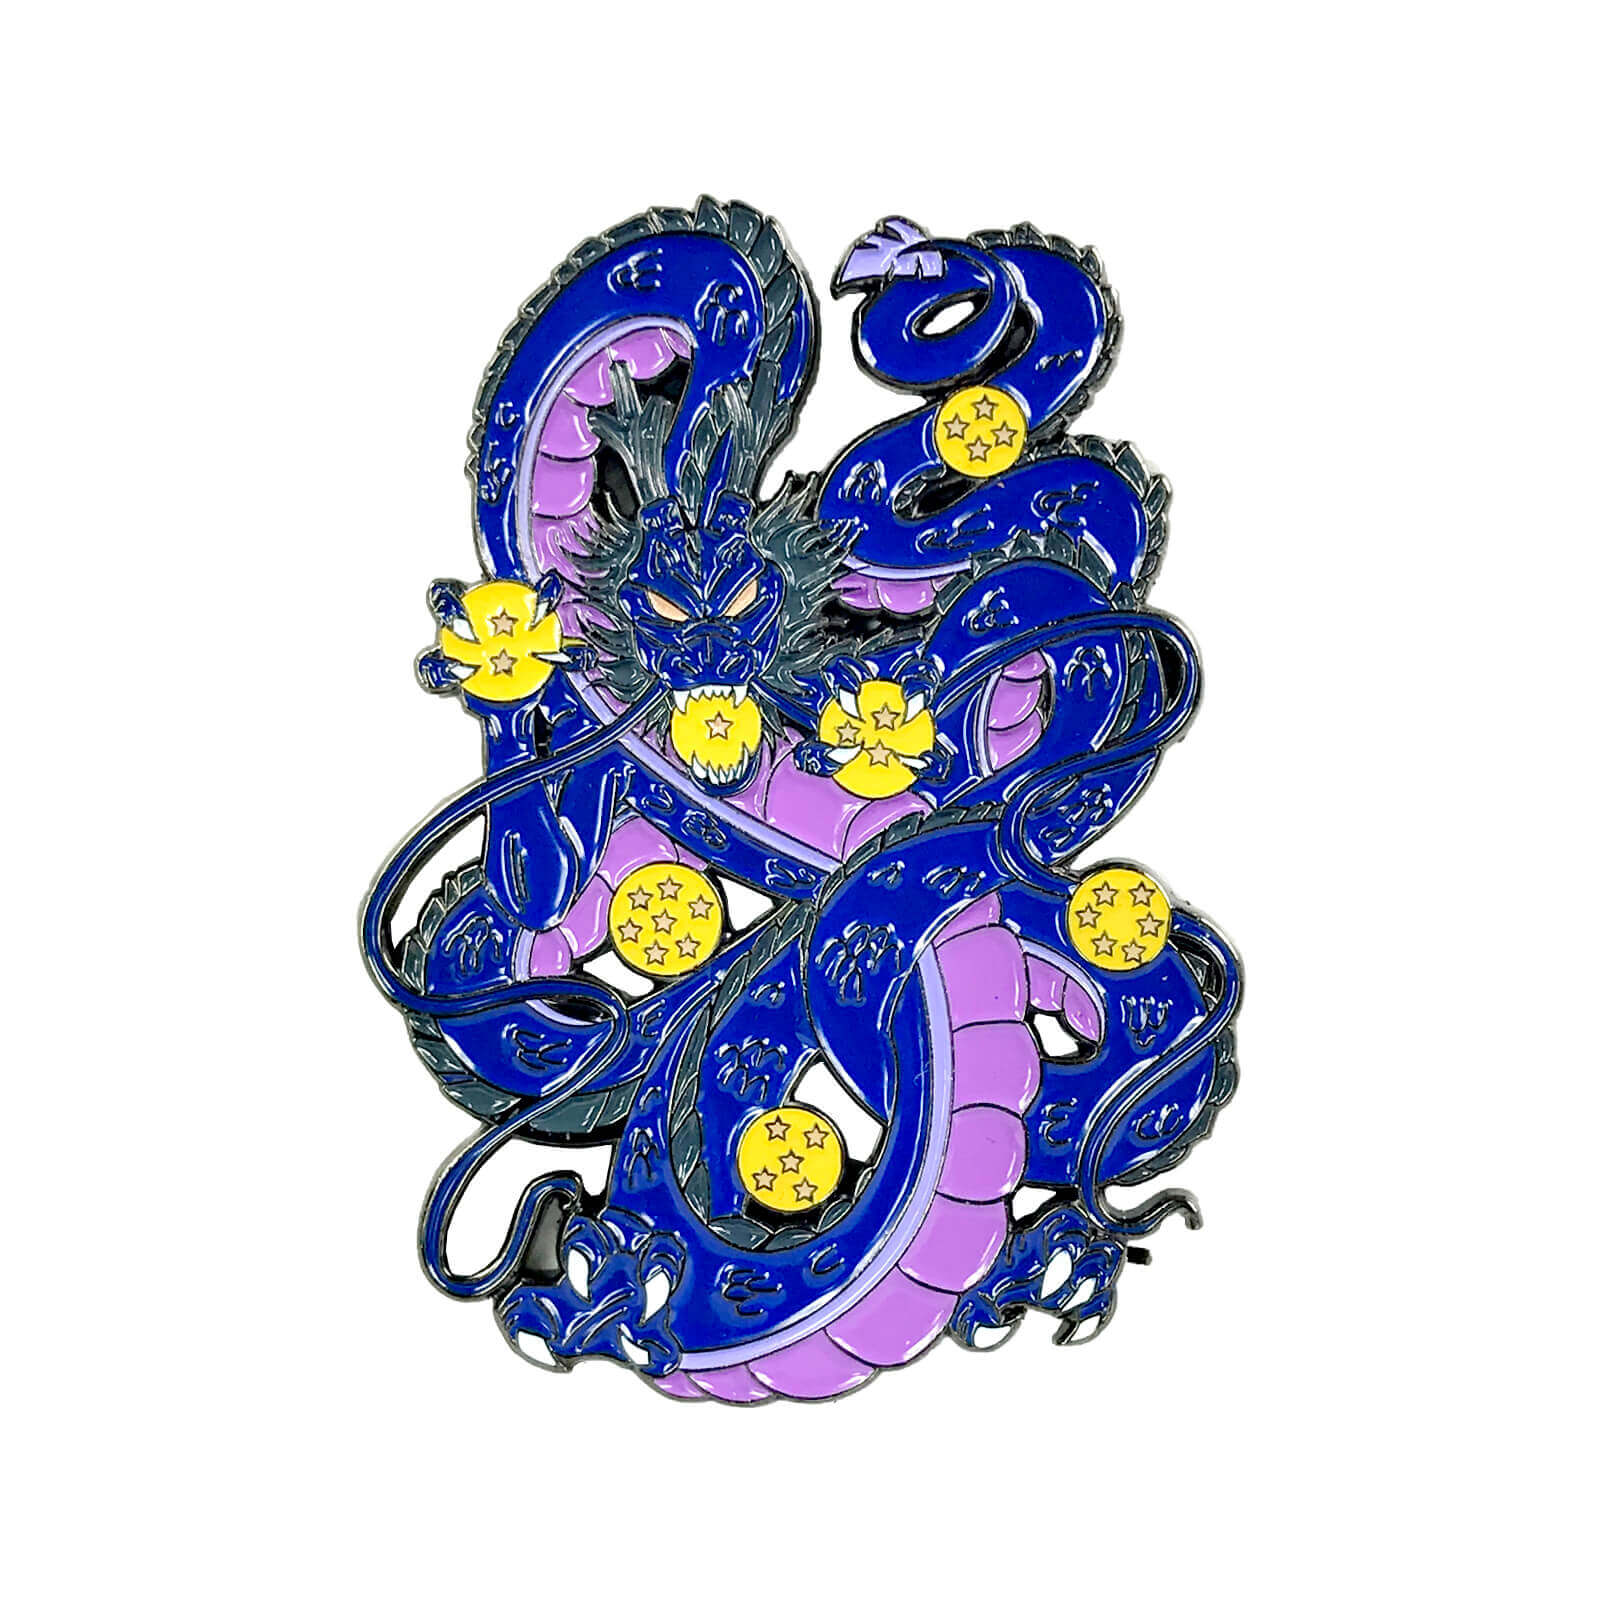 Eternal Dragon (v3 Black Smoke) Enamel Pin